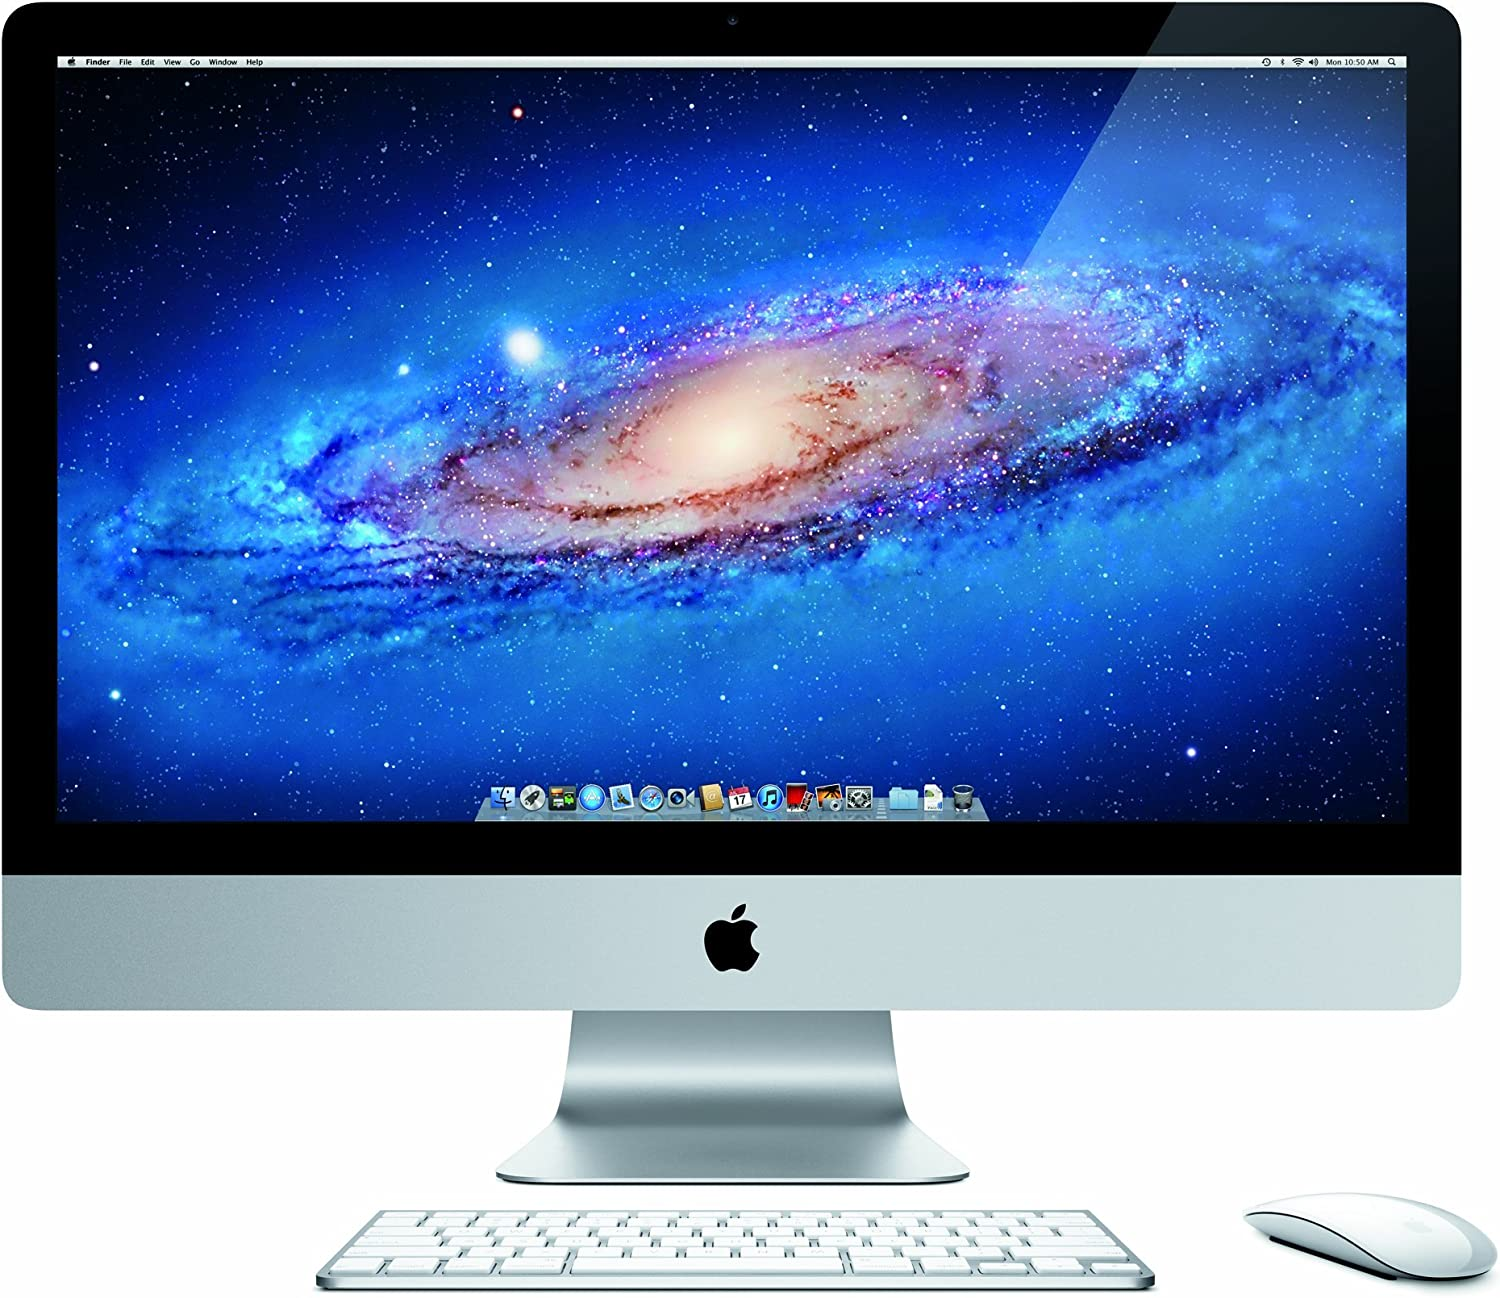 Apple iMac MC814LL/A 27-Inch Desktop PC (3.1GHz Intel Core i5 Processor, 4GB RAM, 1TB HDD) (OLD VERSION) (Discontinued by Manufacturer) (Renewed)